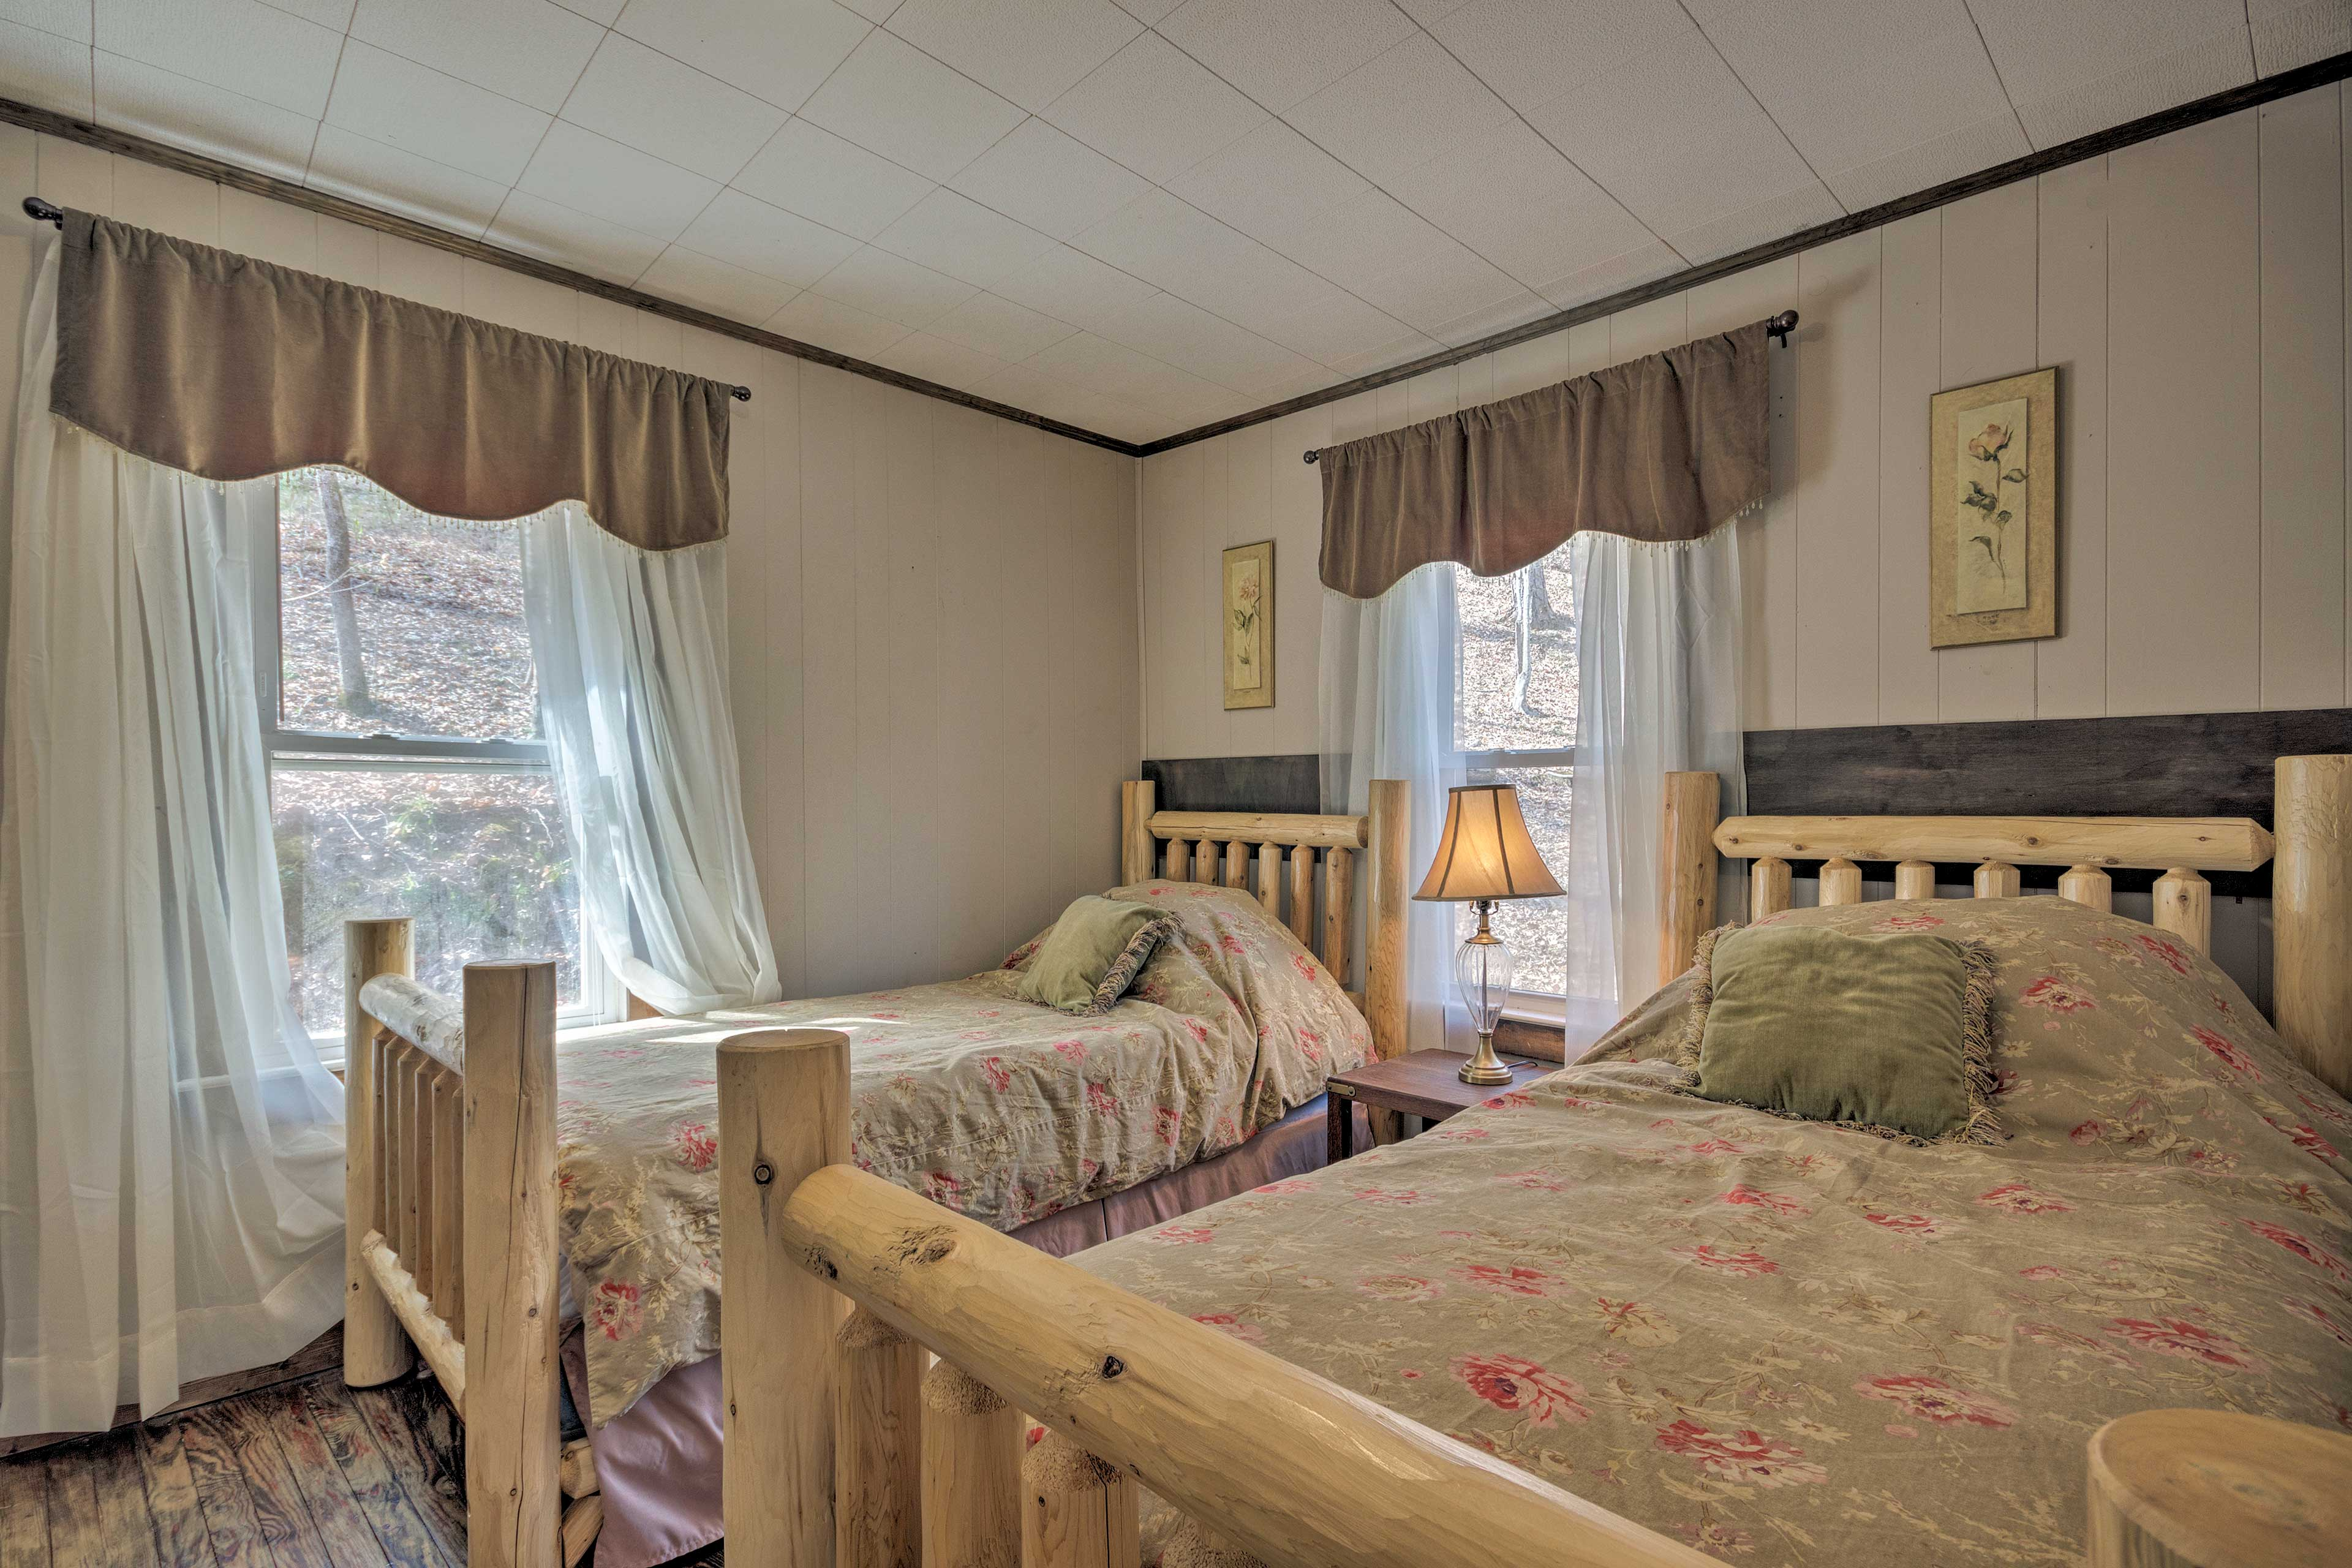 Two twin beds sleep 2 guests in this bedroom.